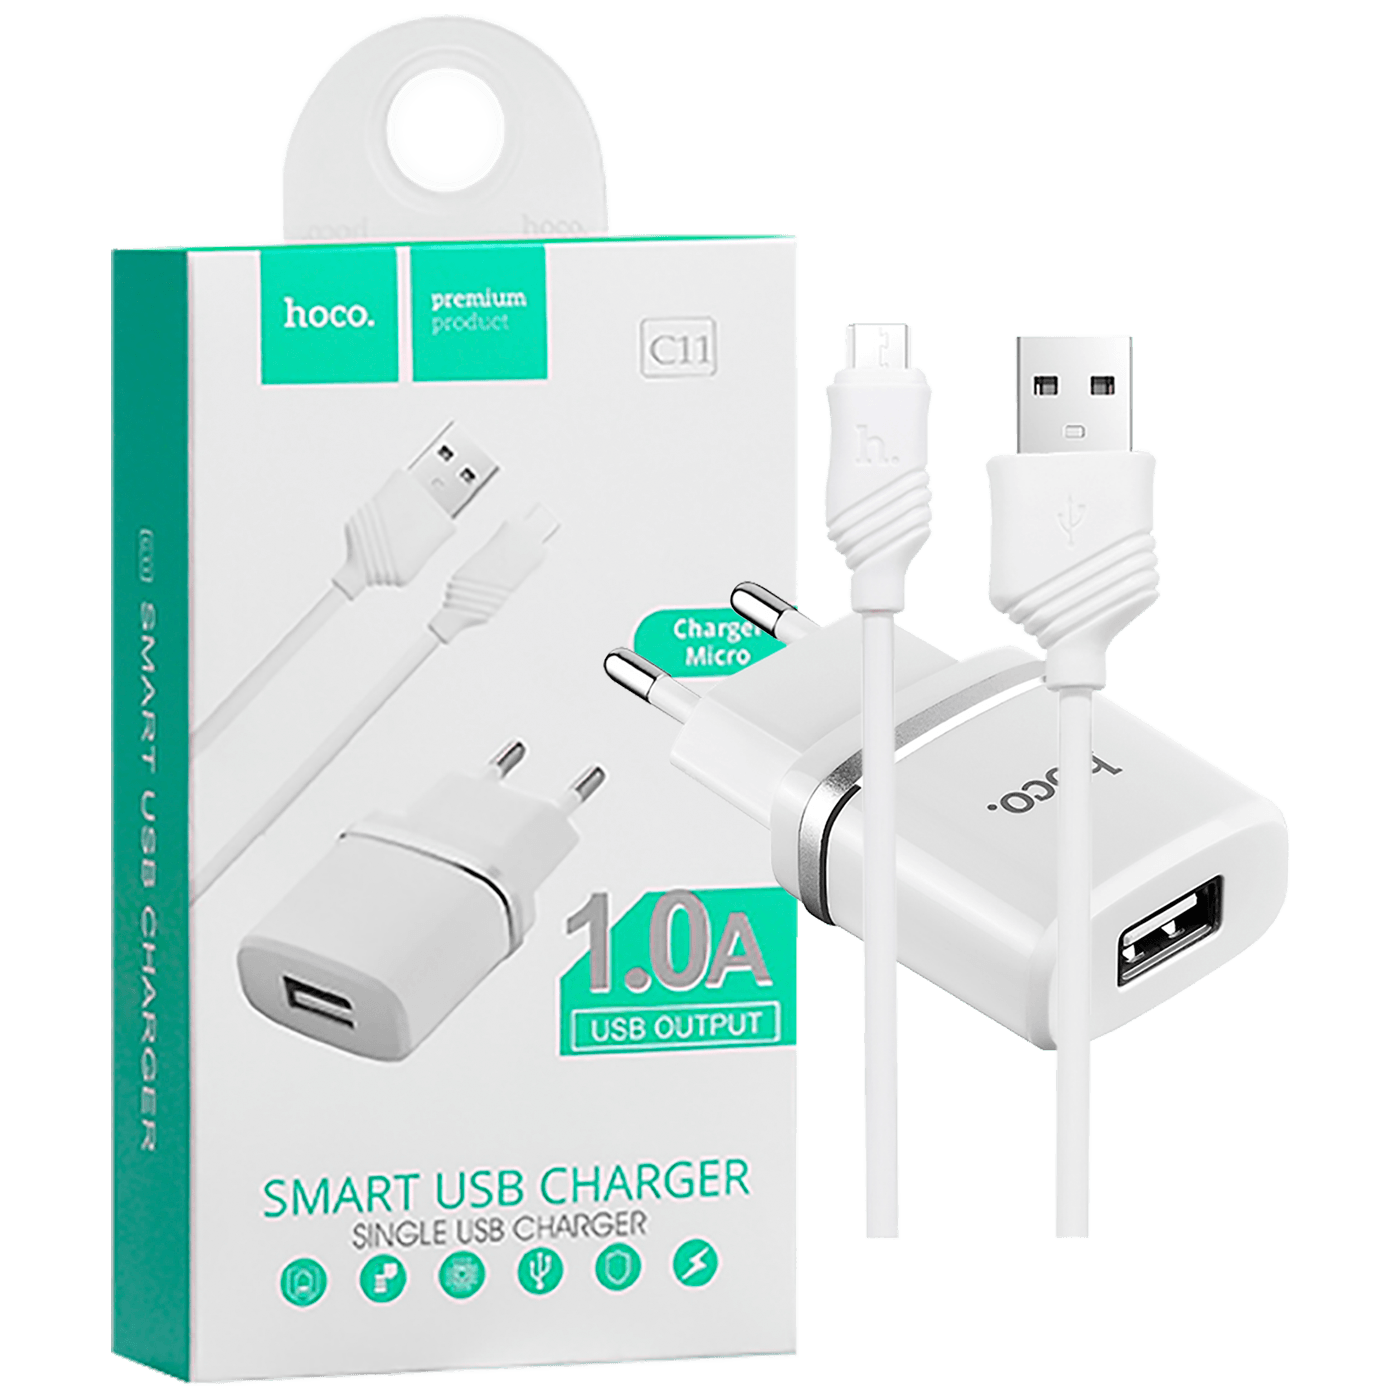 hoco. - C11 Smart single USB, micro USB